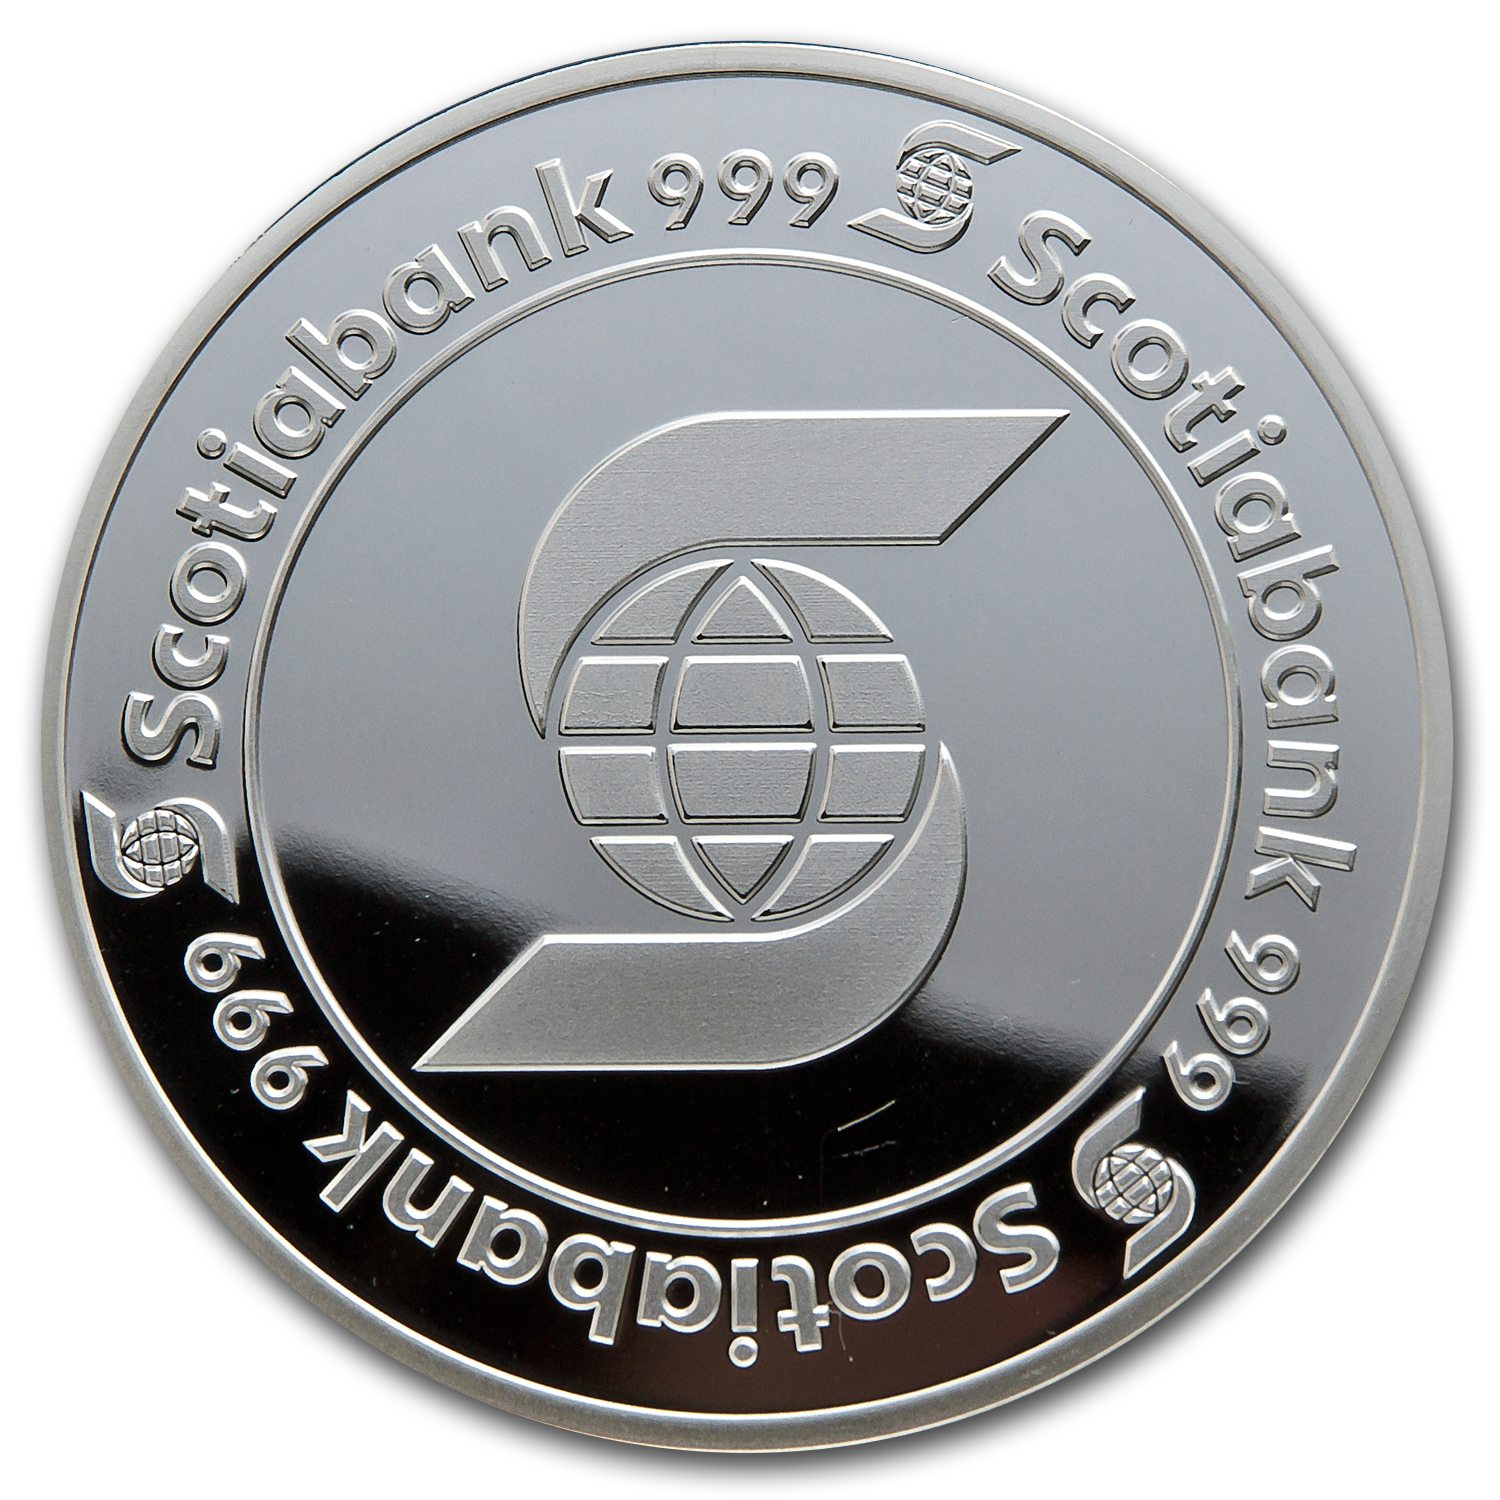 5 oz Silver Round - Scotiabank (w/Capsule)